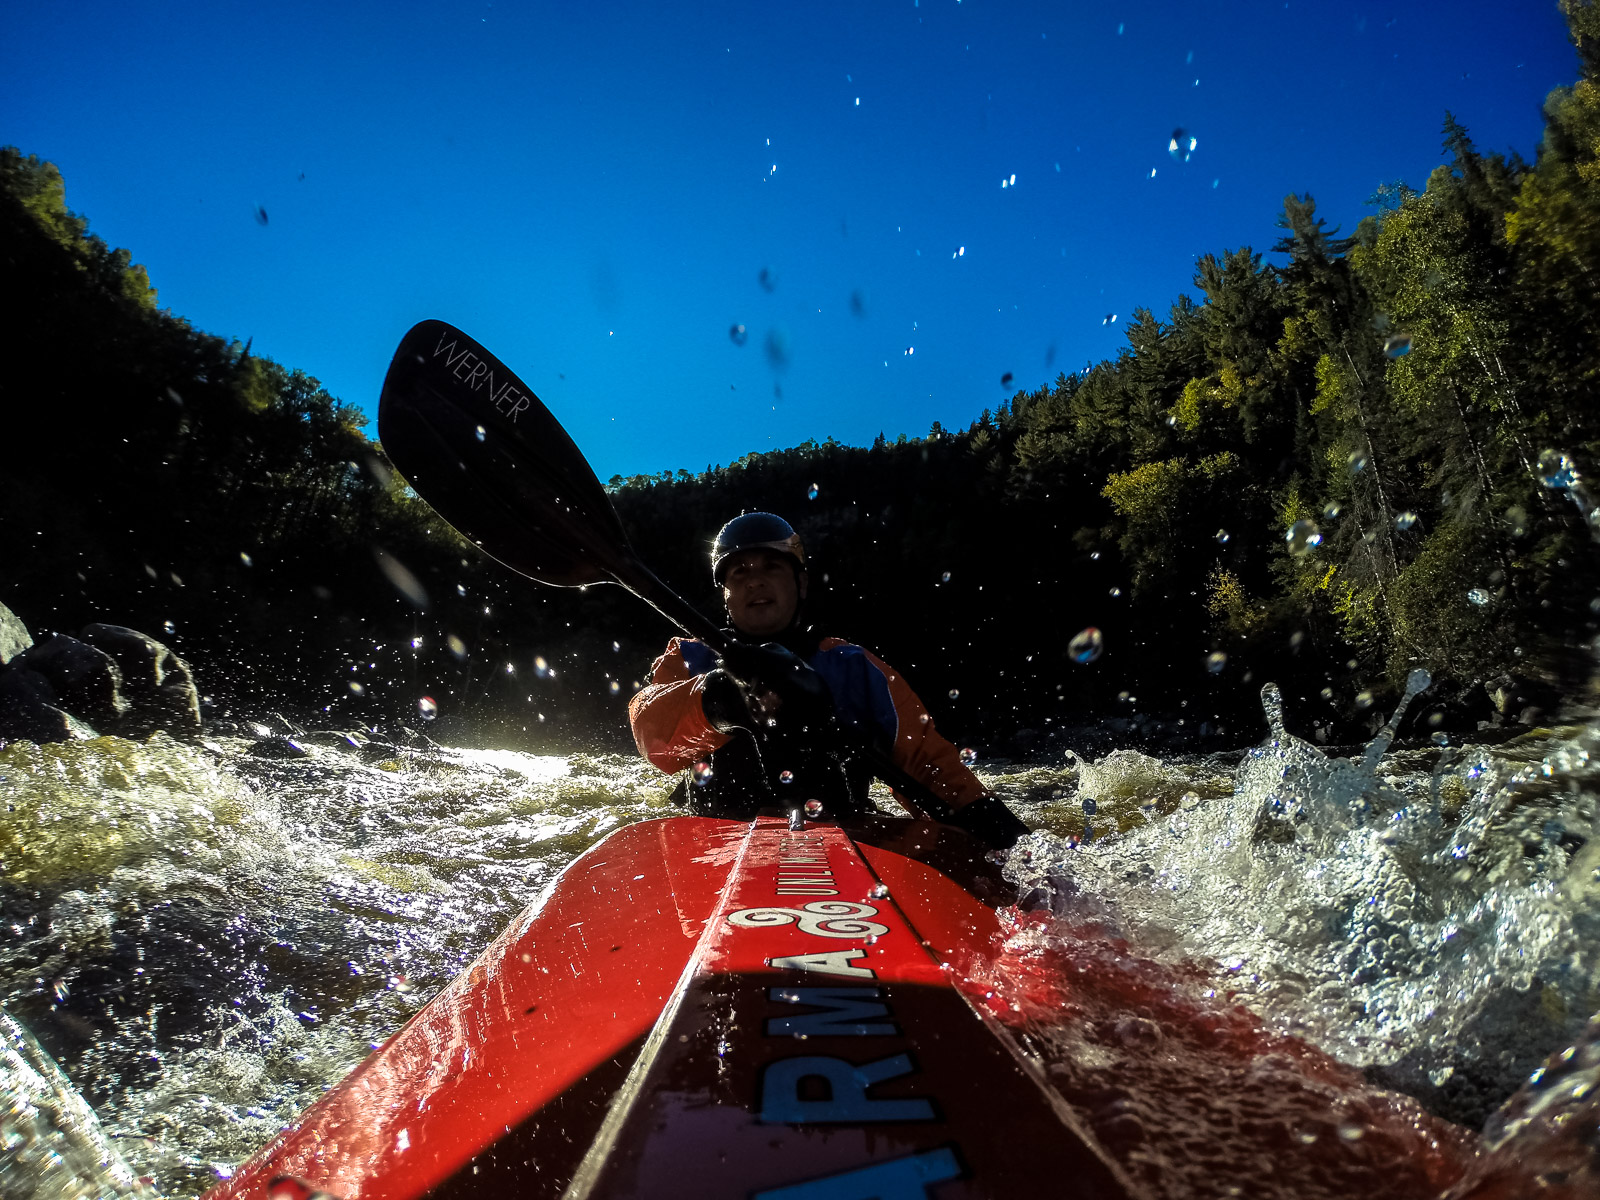 Patrick Levesque Top 25 Whitewater Kayaking Photos Of 2015